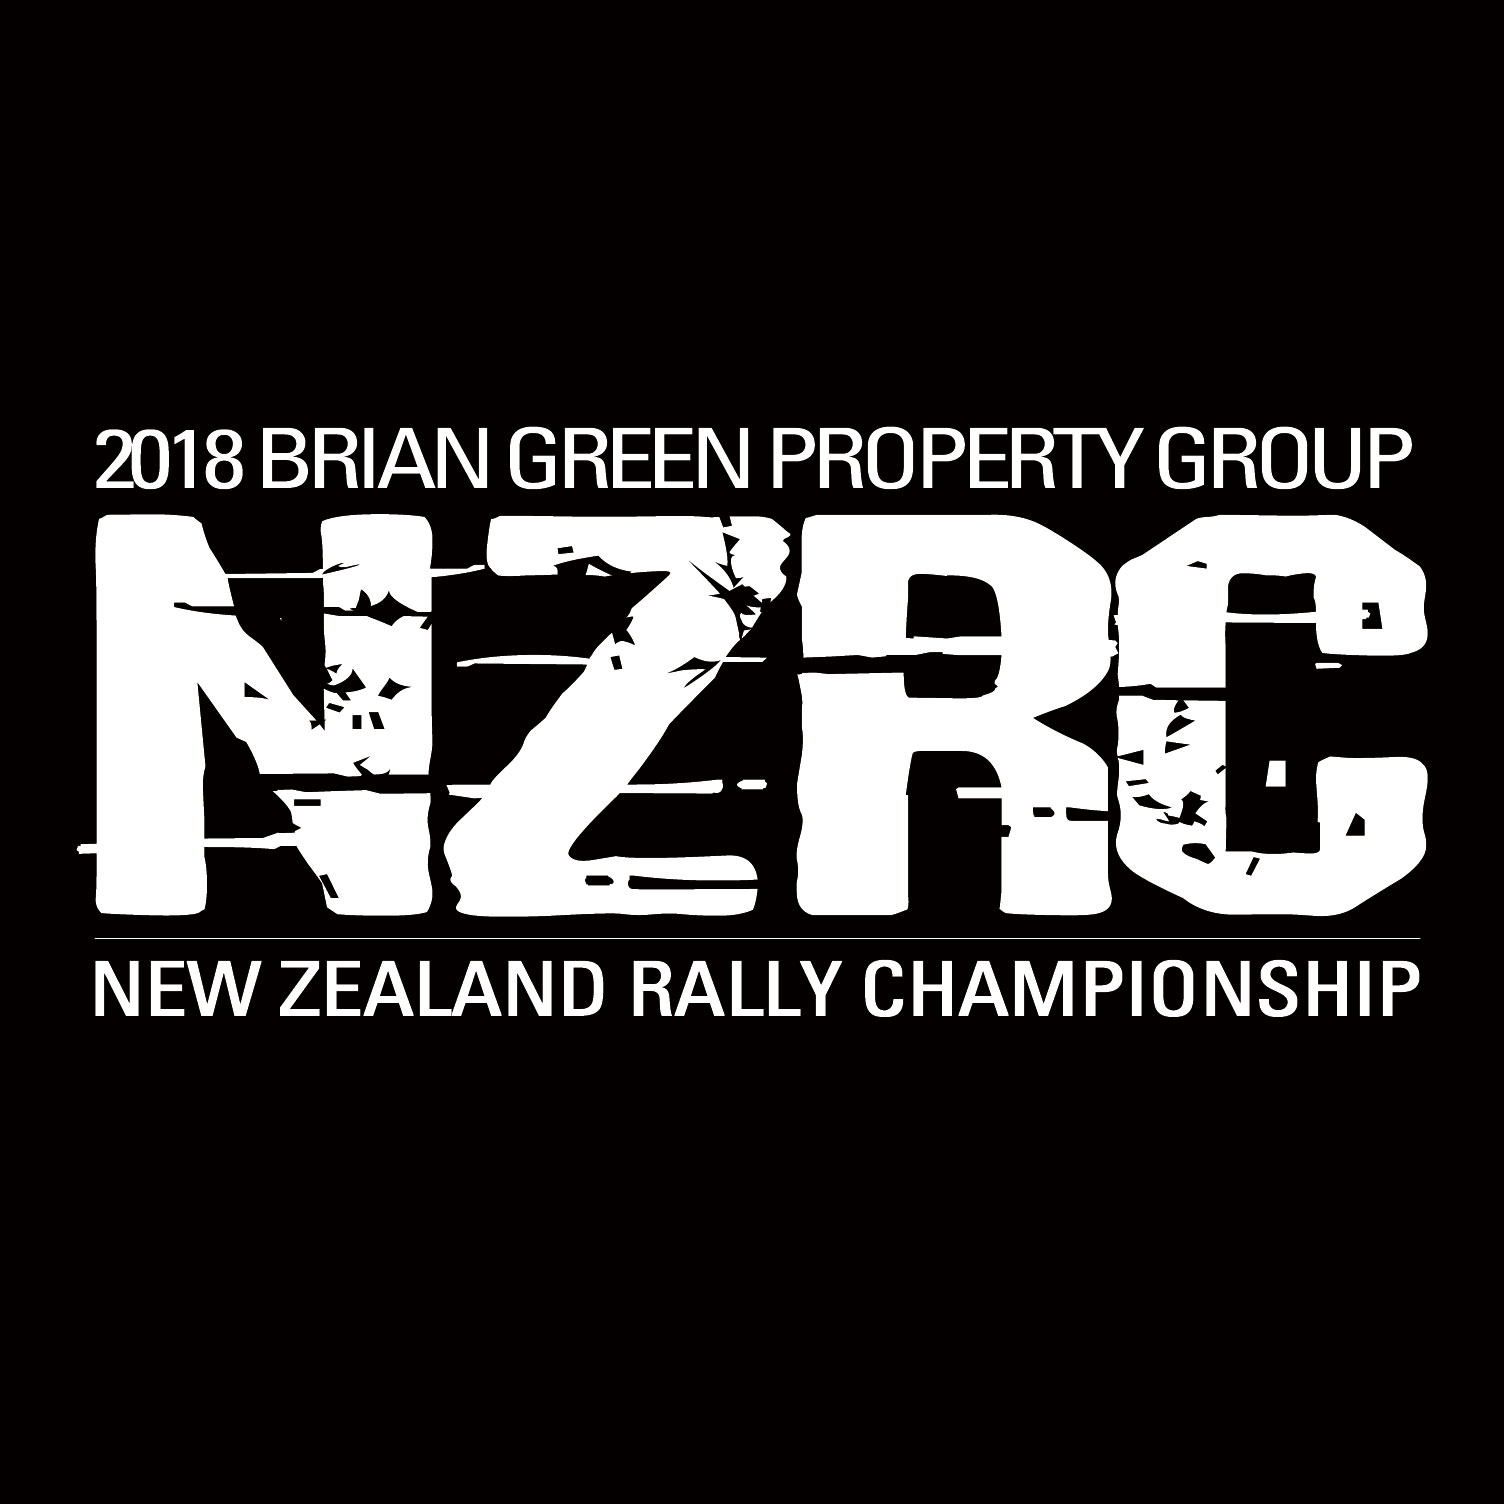 Victory for Hunt at Waitomo lines up three-way title fight! | :: Brian Green Property Group New Zealand Rally Championship ::